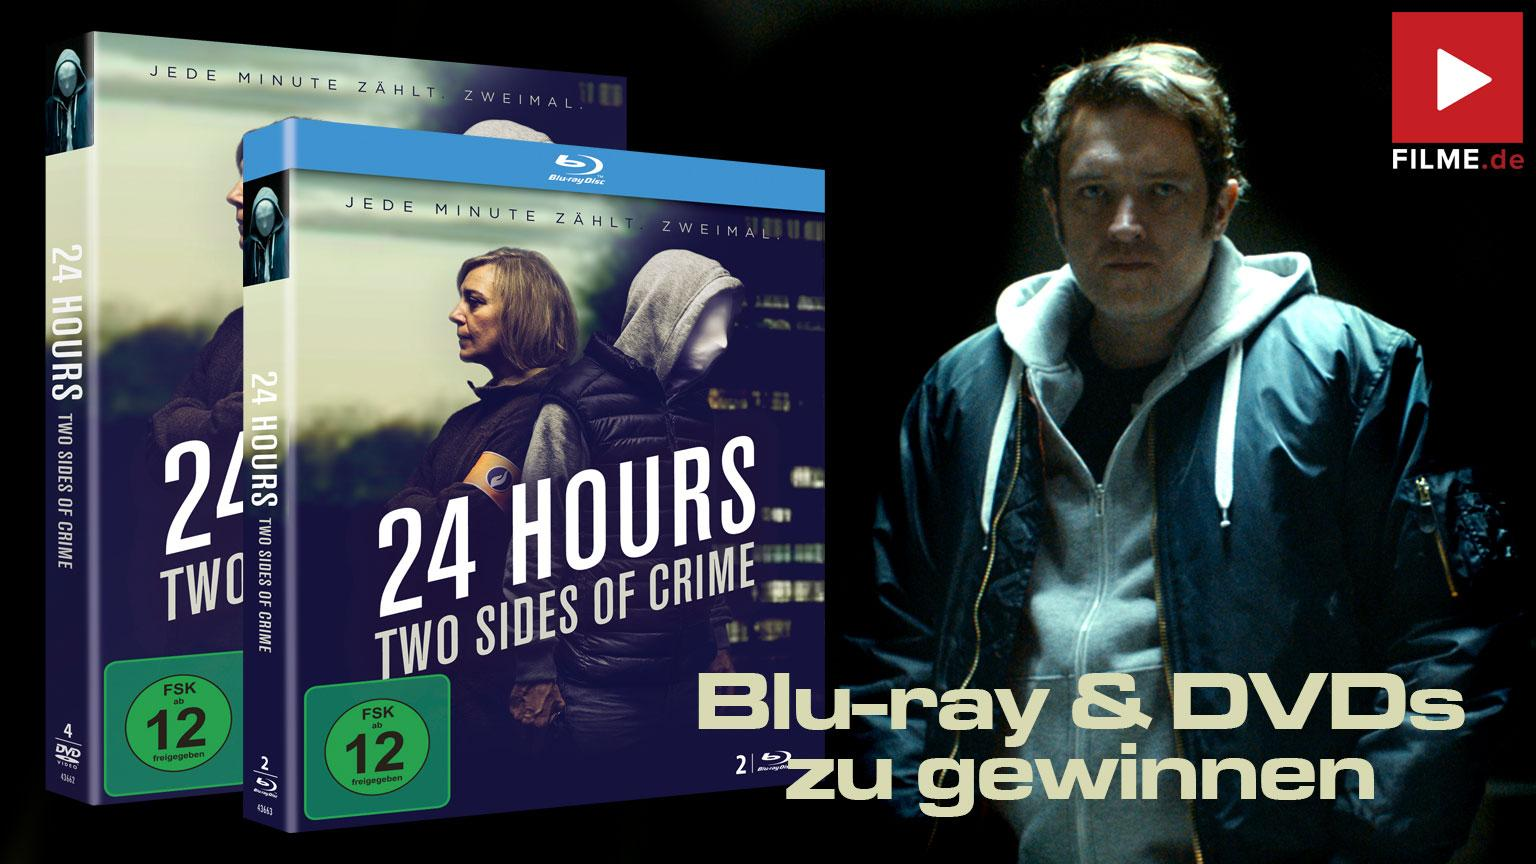 24 Hours - Two Sides of Crime Staffel 2 Gewinnspiel Artikelbild